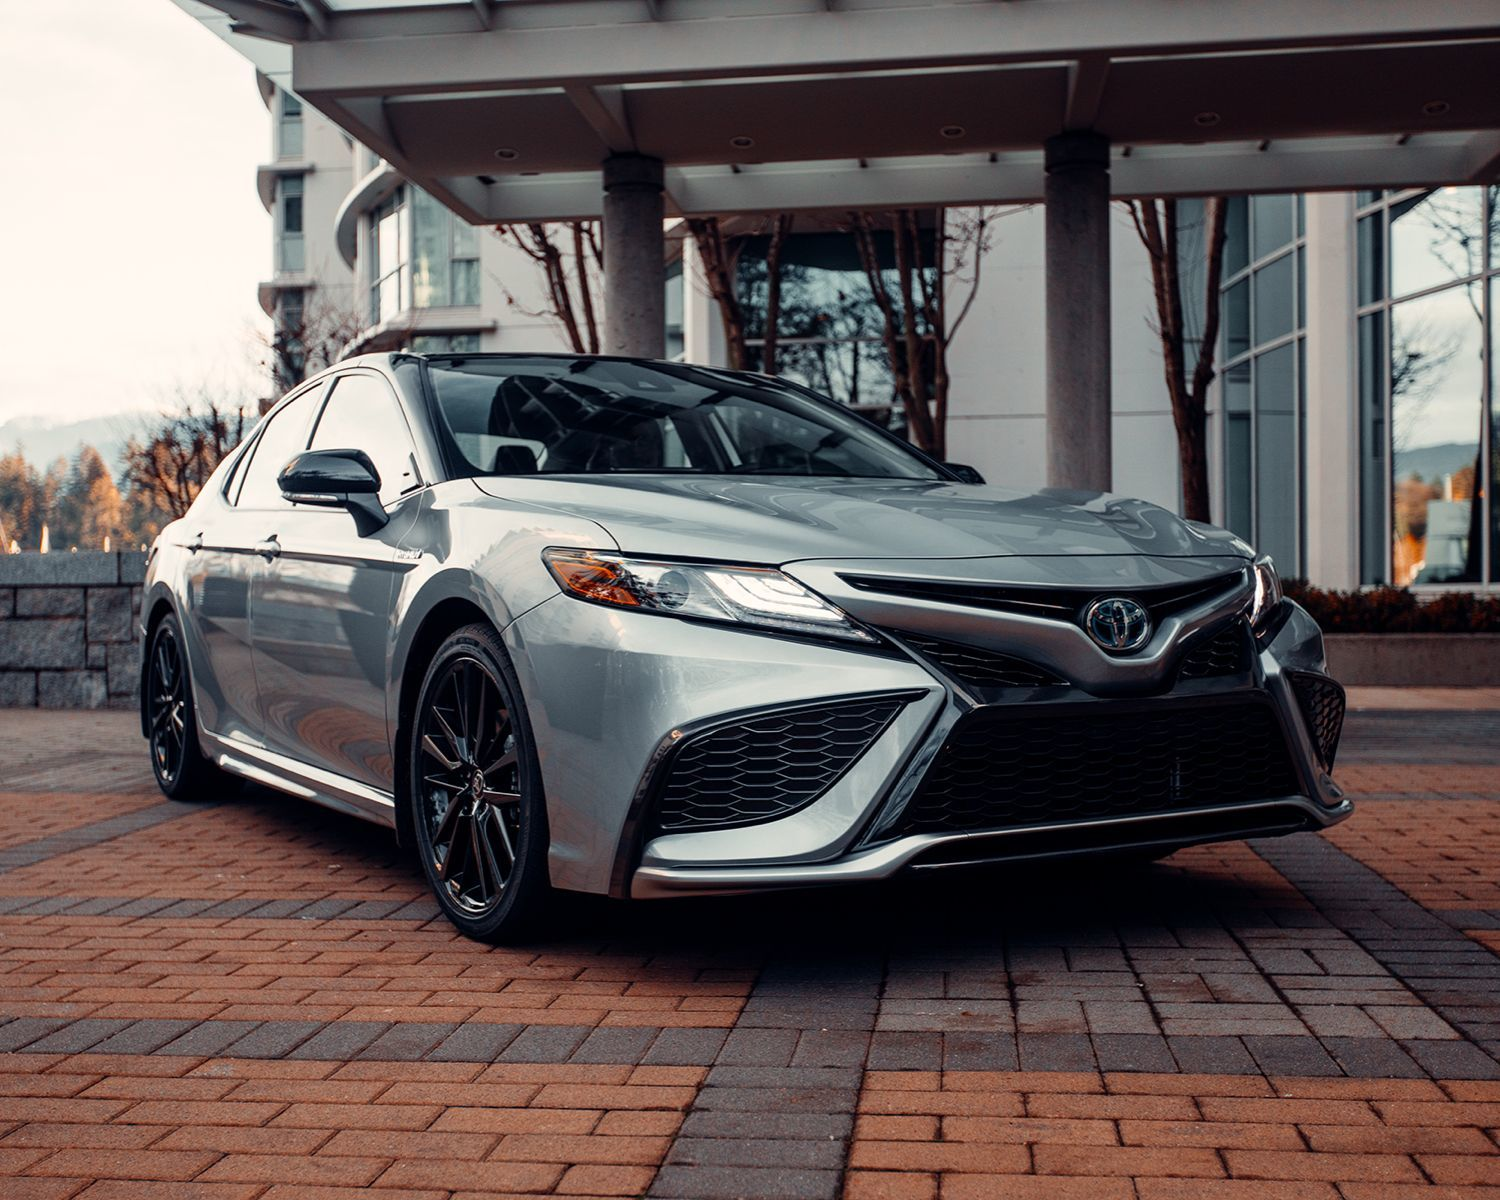 Camry Hybrid XSE shown in Celestial Silver Metallic with Black Roof